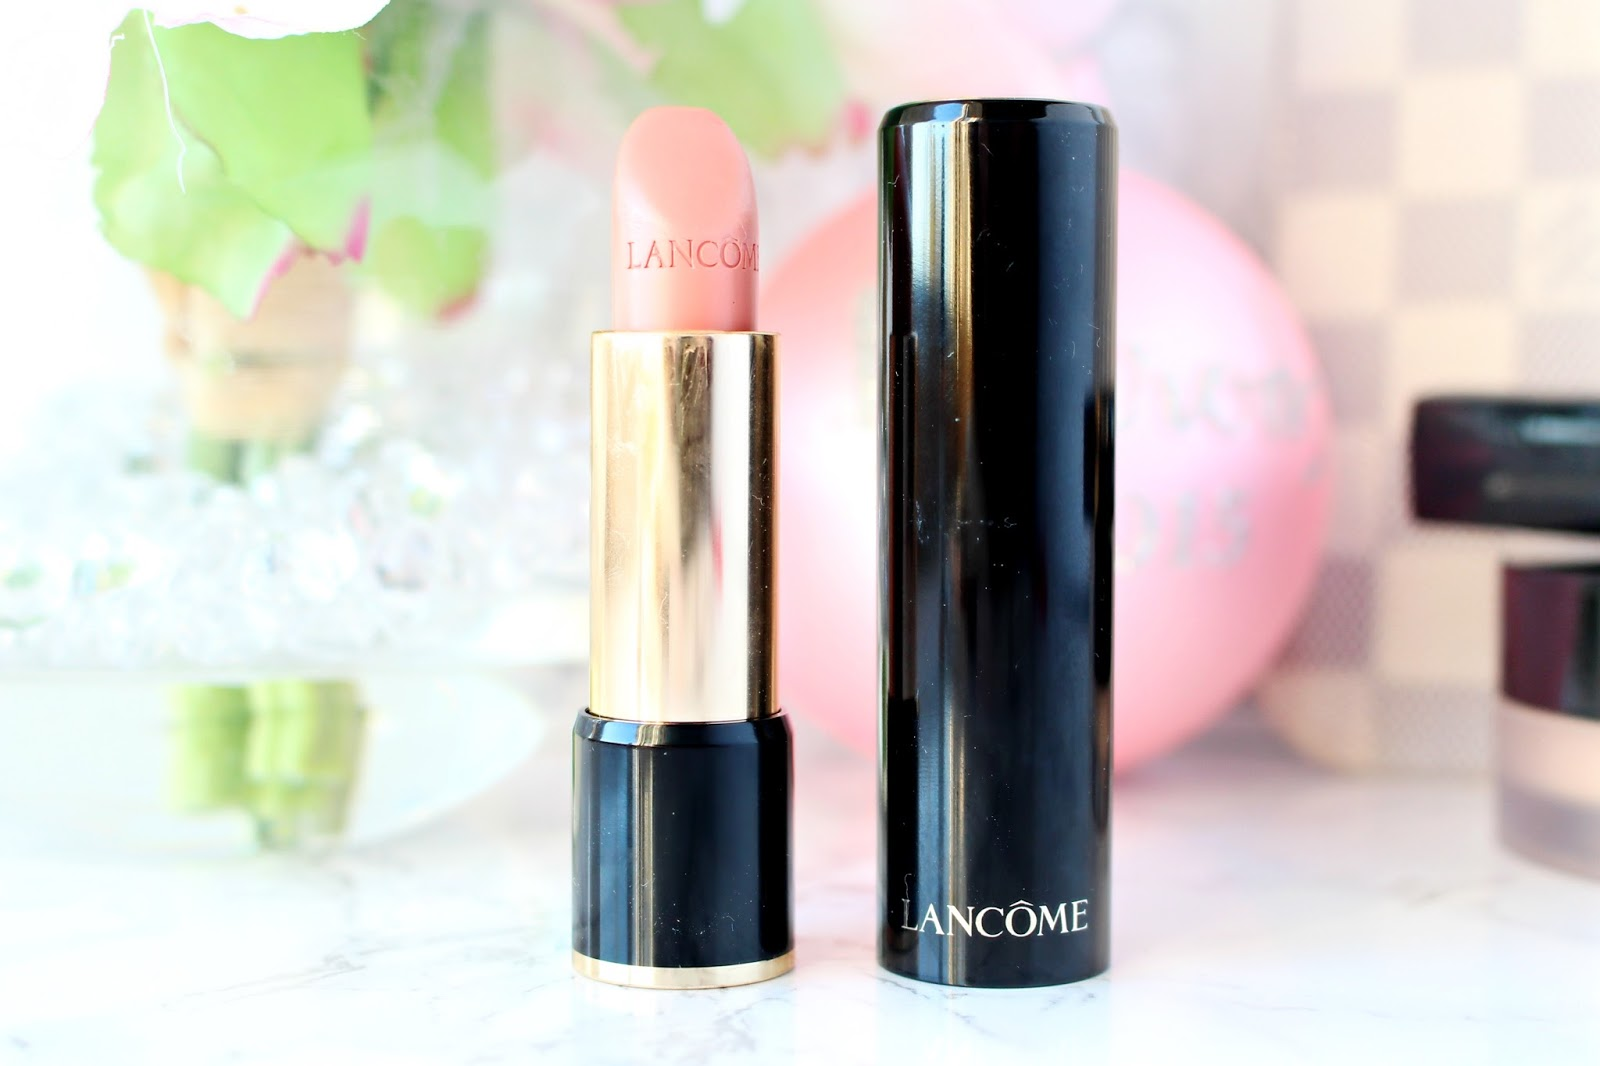 lancome lipstick review india the art of beauty